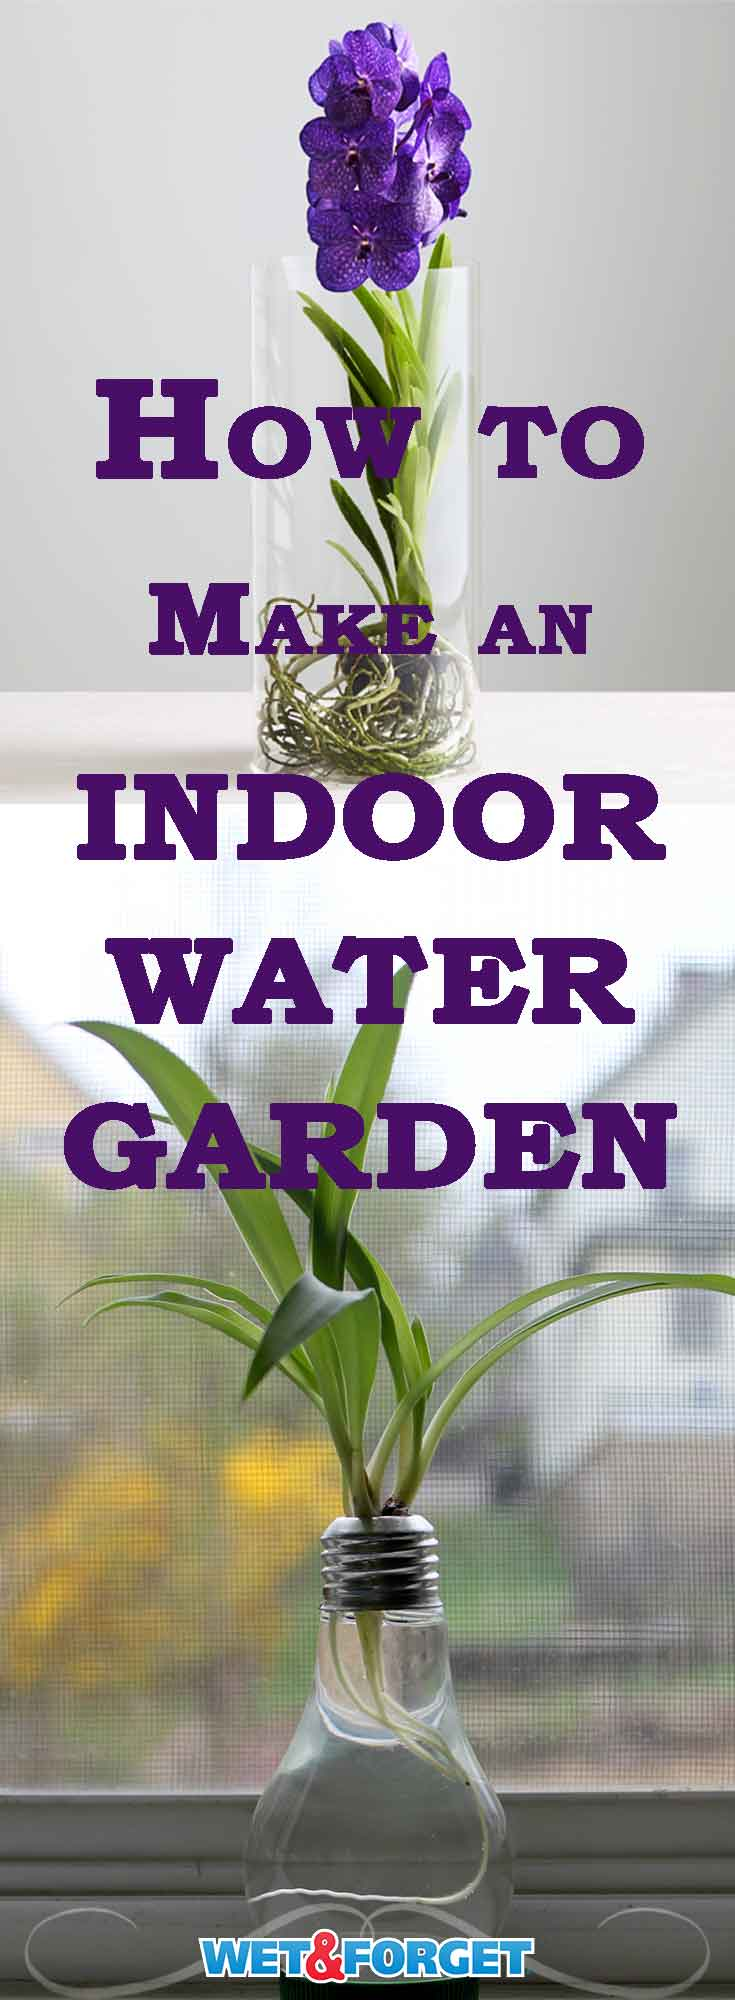 Indoor Water Gardens Ask wet forget indoor water garden the how to guide to decorating brighten up your home with an indoor water garden learn how to create your own workwithnaturefo